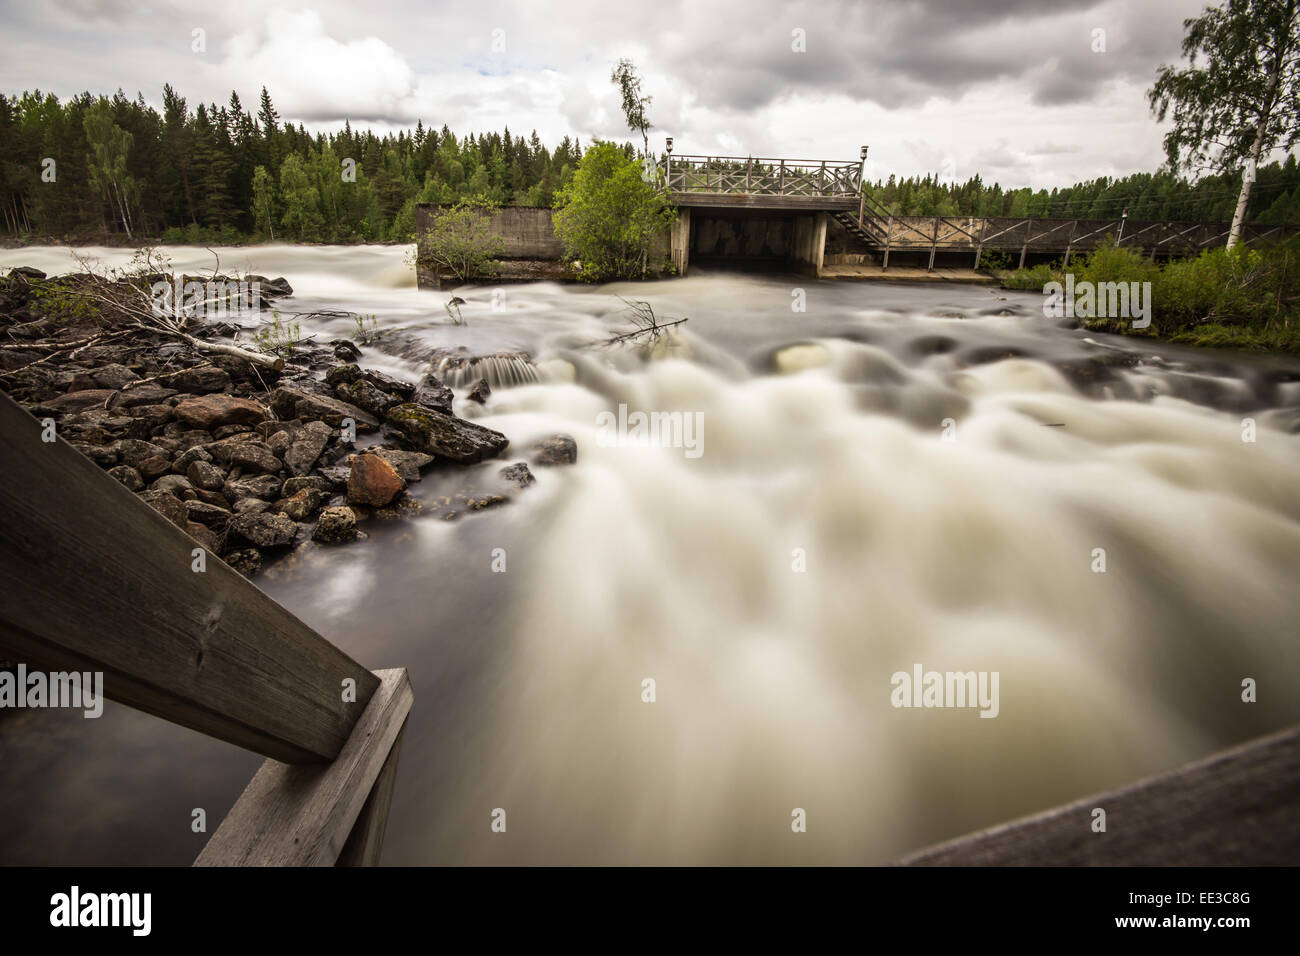 Raging River in Northern Sweden - Stock Image